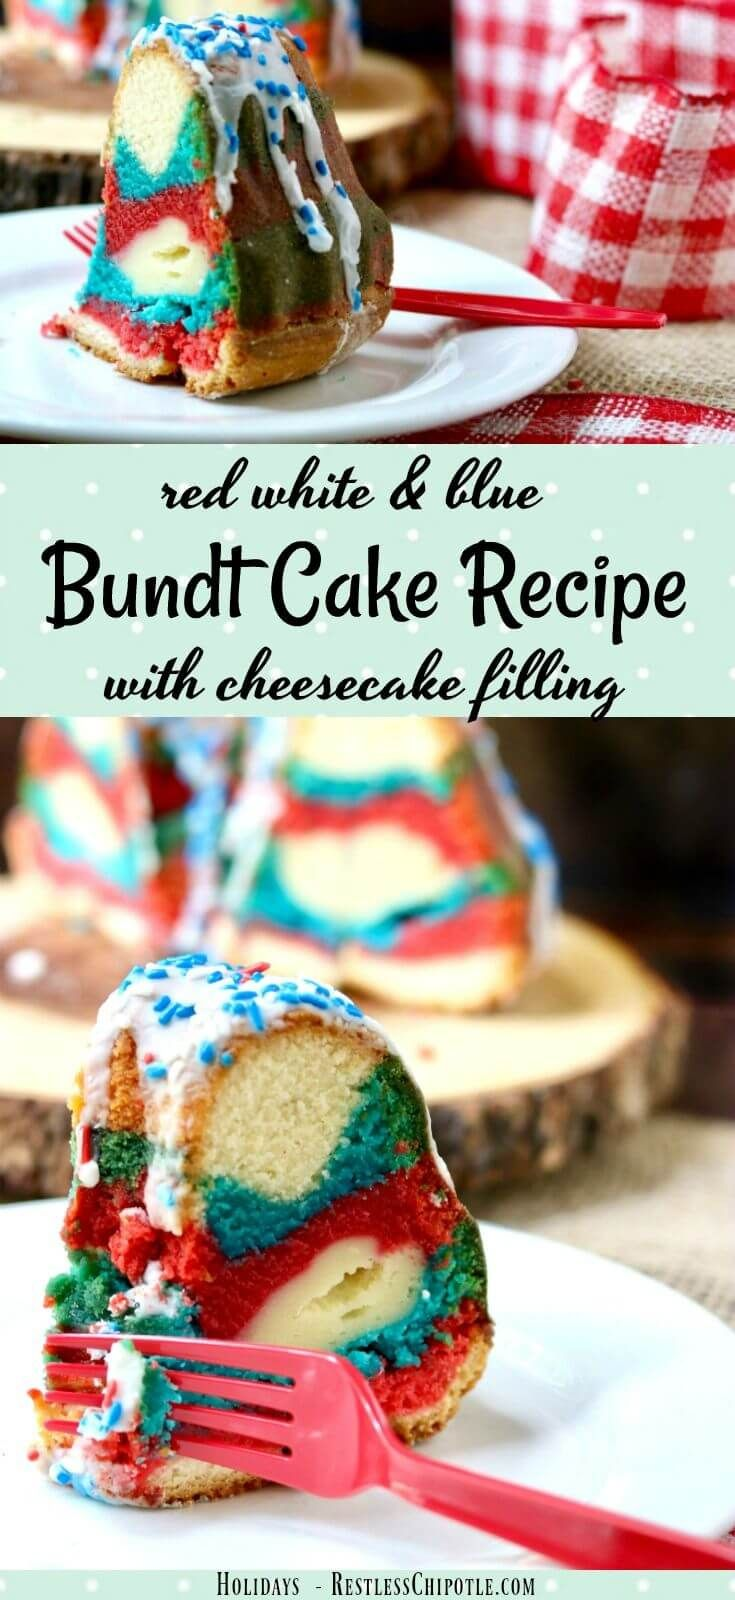 Perfect for summer holidays, this tangy red white & blue bundt cake recipe is sweet and delicious with a tunnel of cheesecake filling right through the center. So easy and definitely  memorable! #SundaySupper From RestlessChipotle.com via @Marye at Restless Chipotle